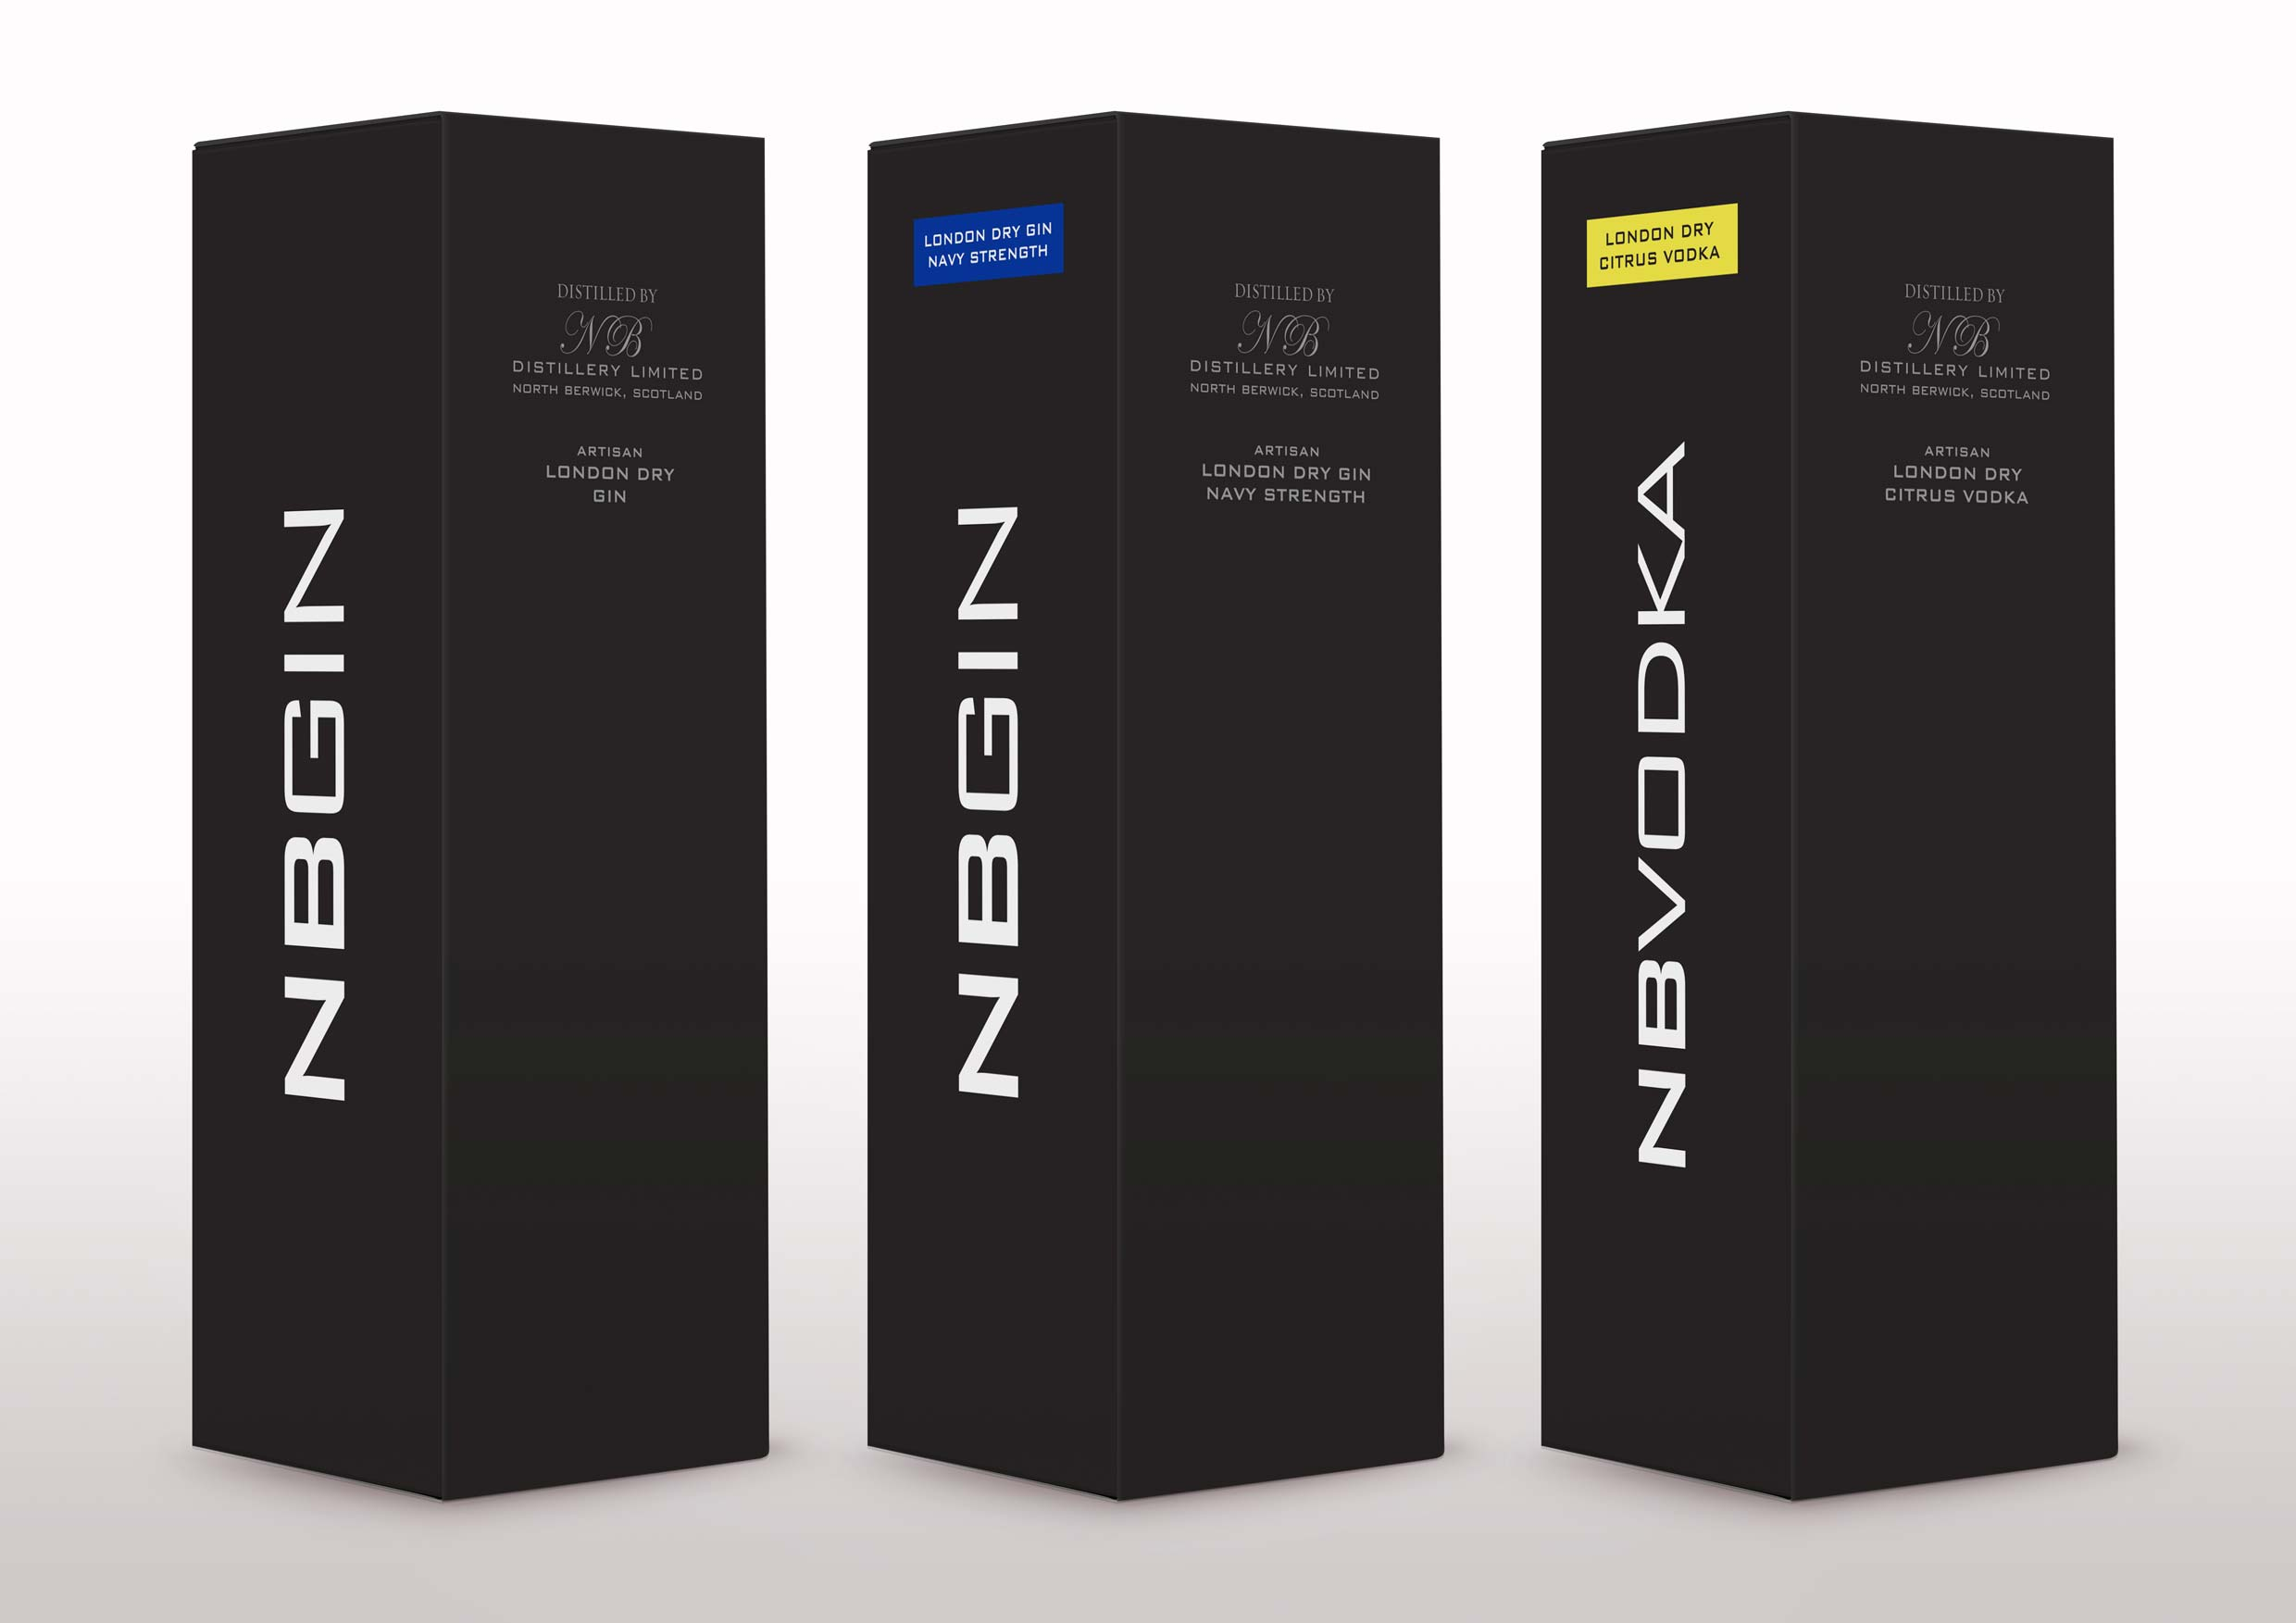 NBGin-NBDistillery_boxes_richardbudddesign.jpg